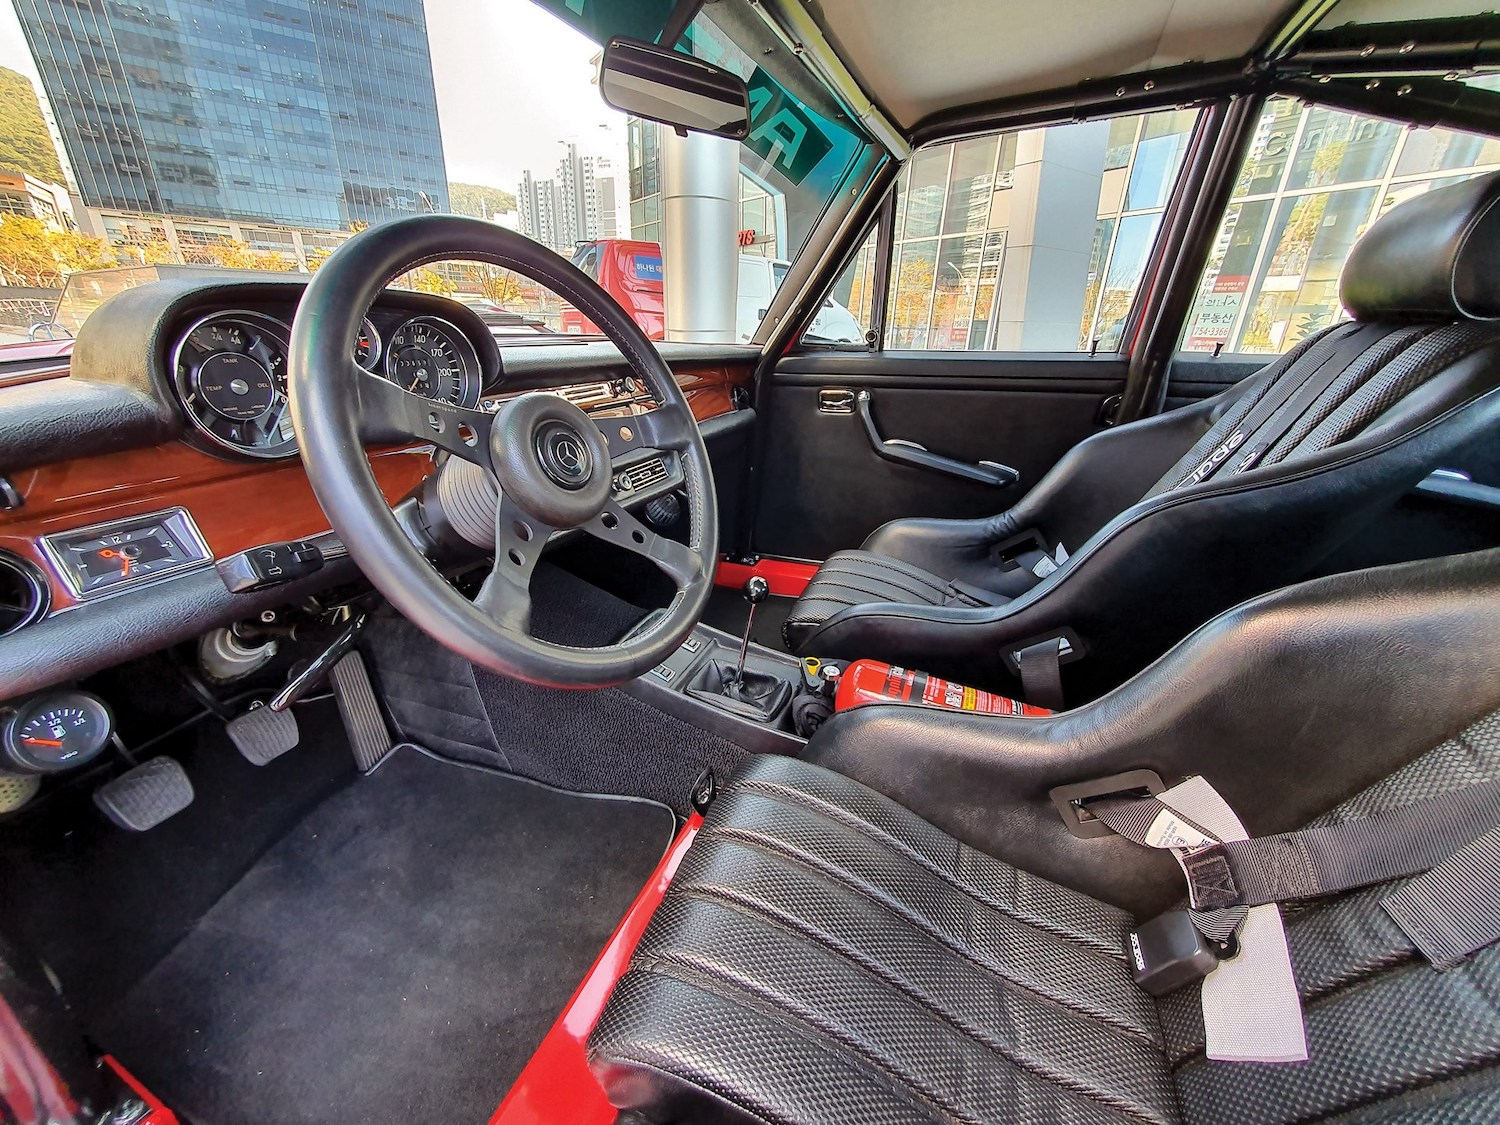 1969 Mercedes-Benz 300 SEL 6.3 'Red Pig' Replica interior